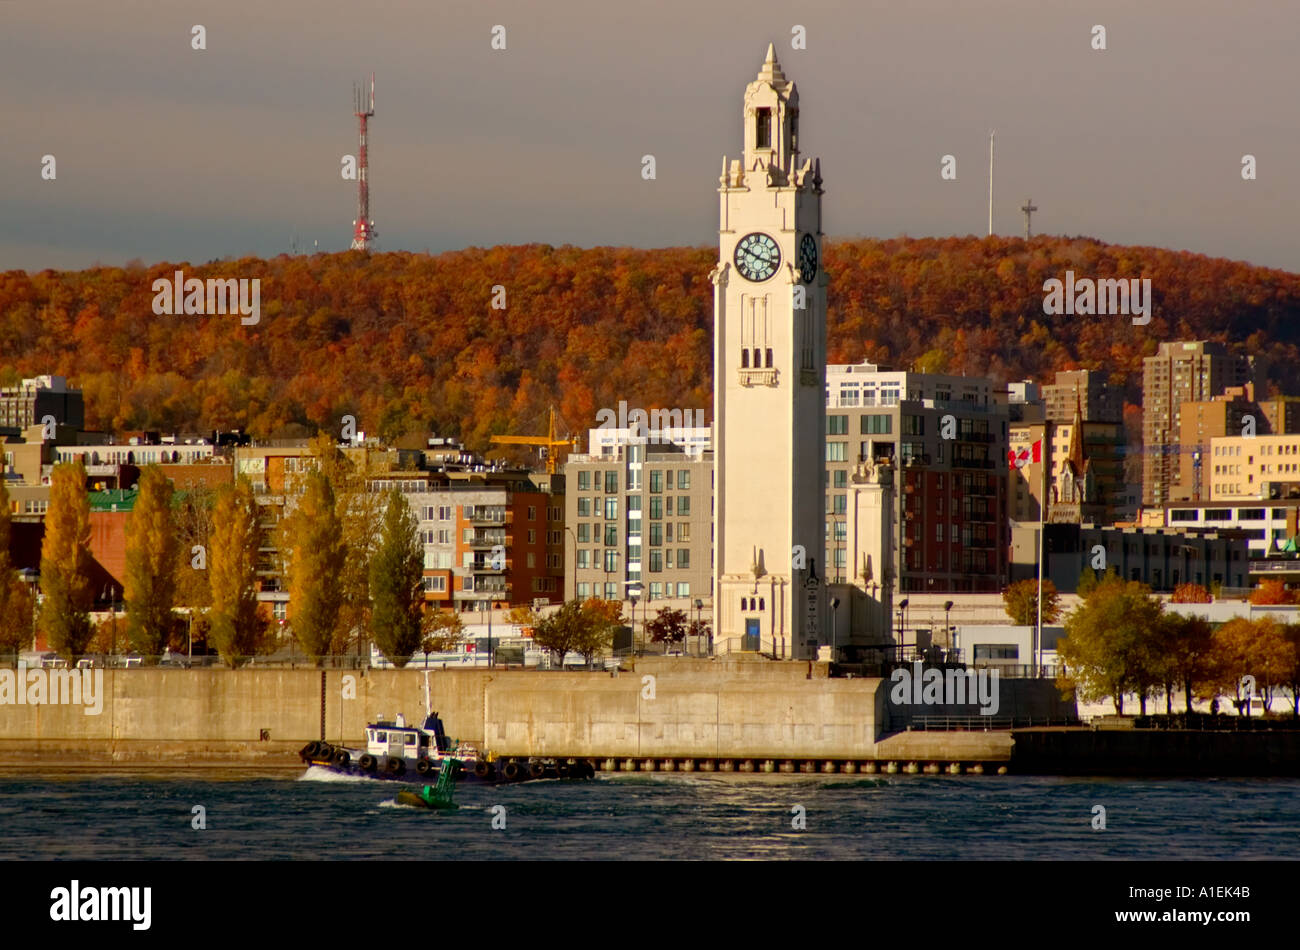 Tour de l 39 horloge quai de l 39 horloge vieux port old montreal stock photo royalty free image - Activite montreal vieux port ...